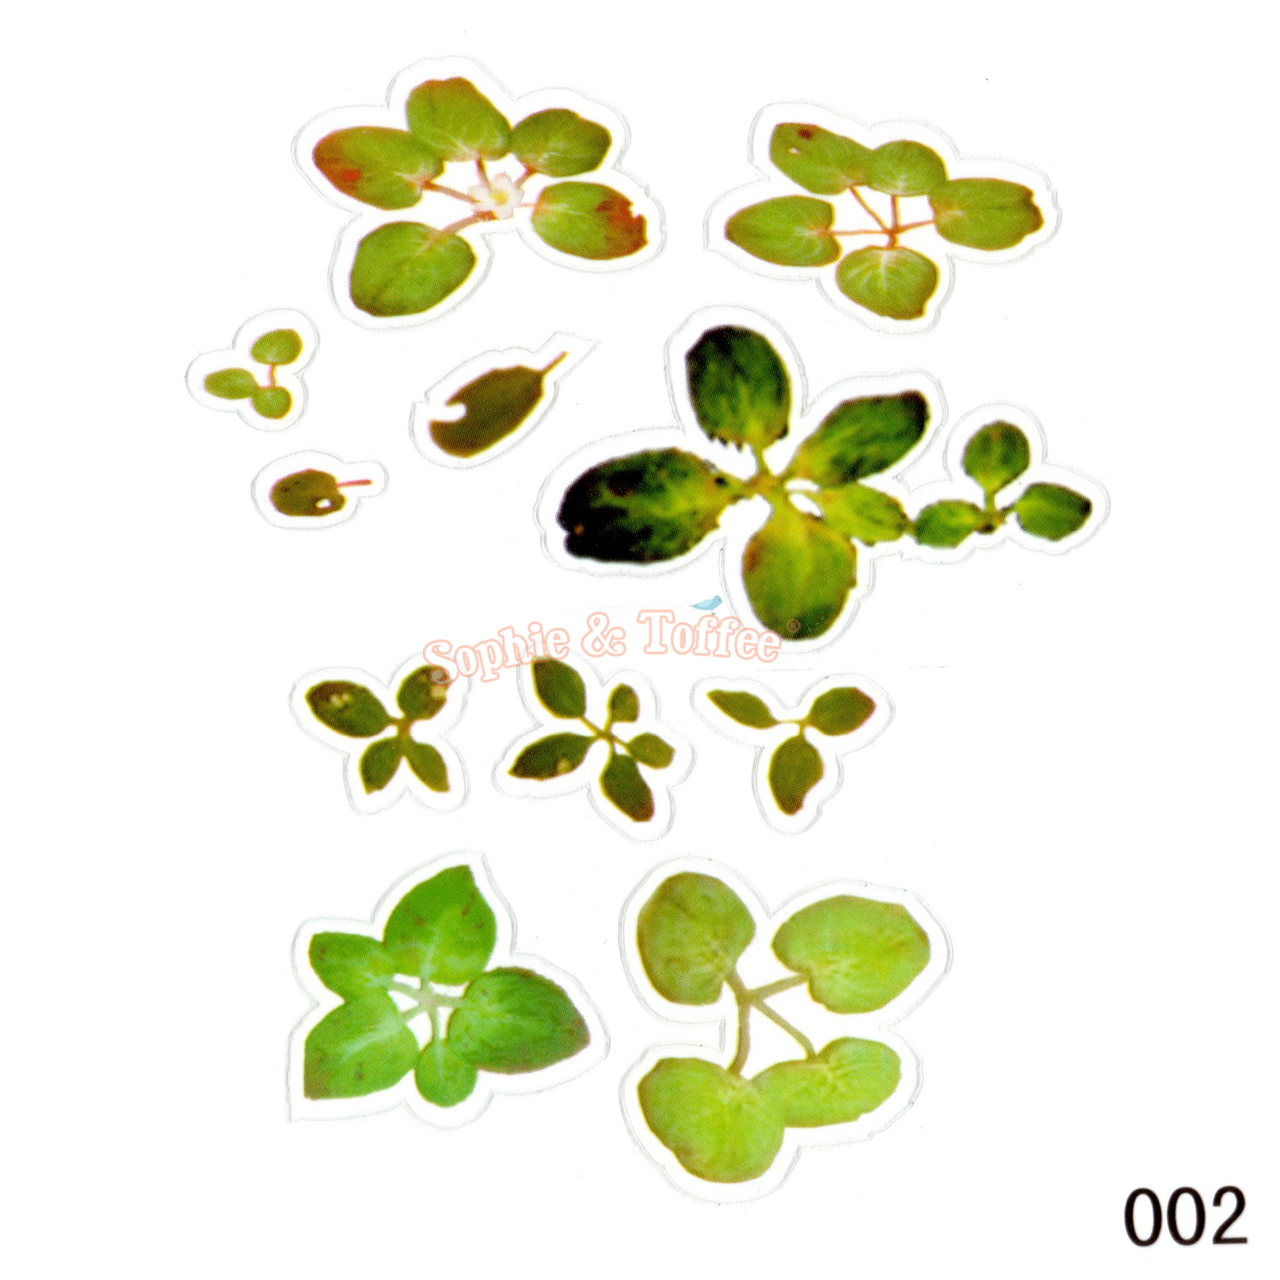 Small Green Leaves Koi Pond Clear 3D Film (3 pieces)